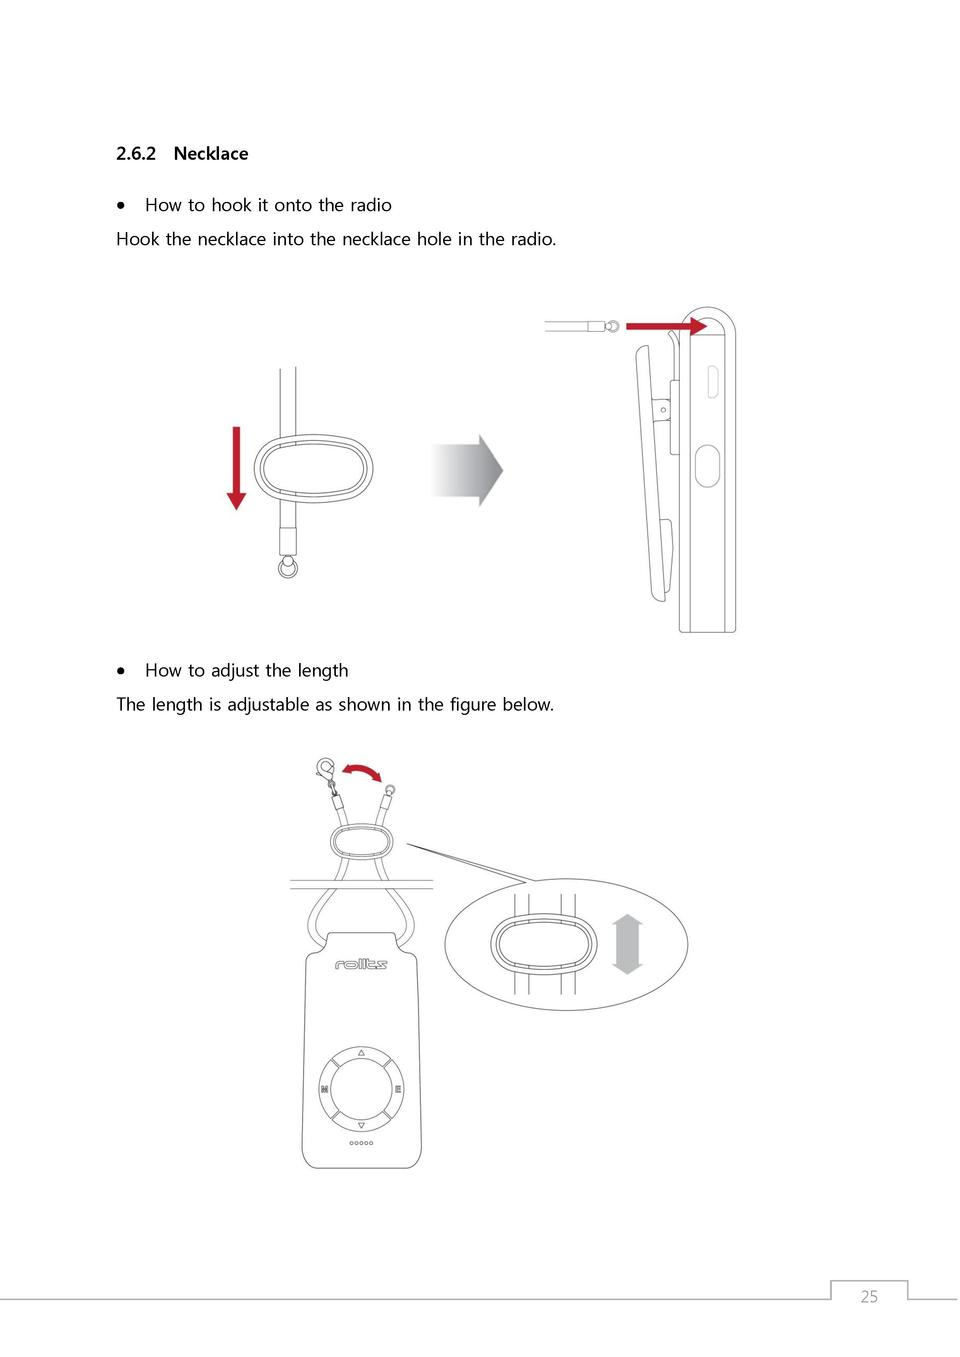 2.6.2 Necklace      How to hook it onto the radio  Hook the necklace into the necklace hole in the radio.       How to adj...